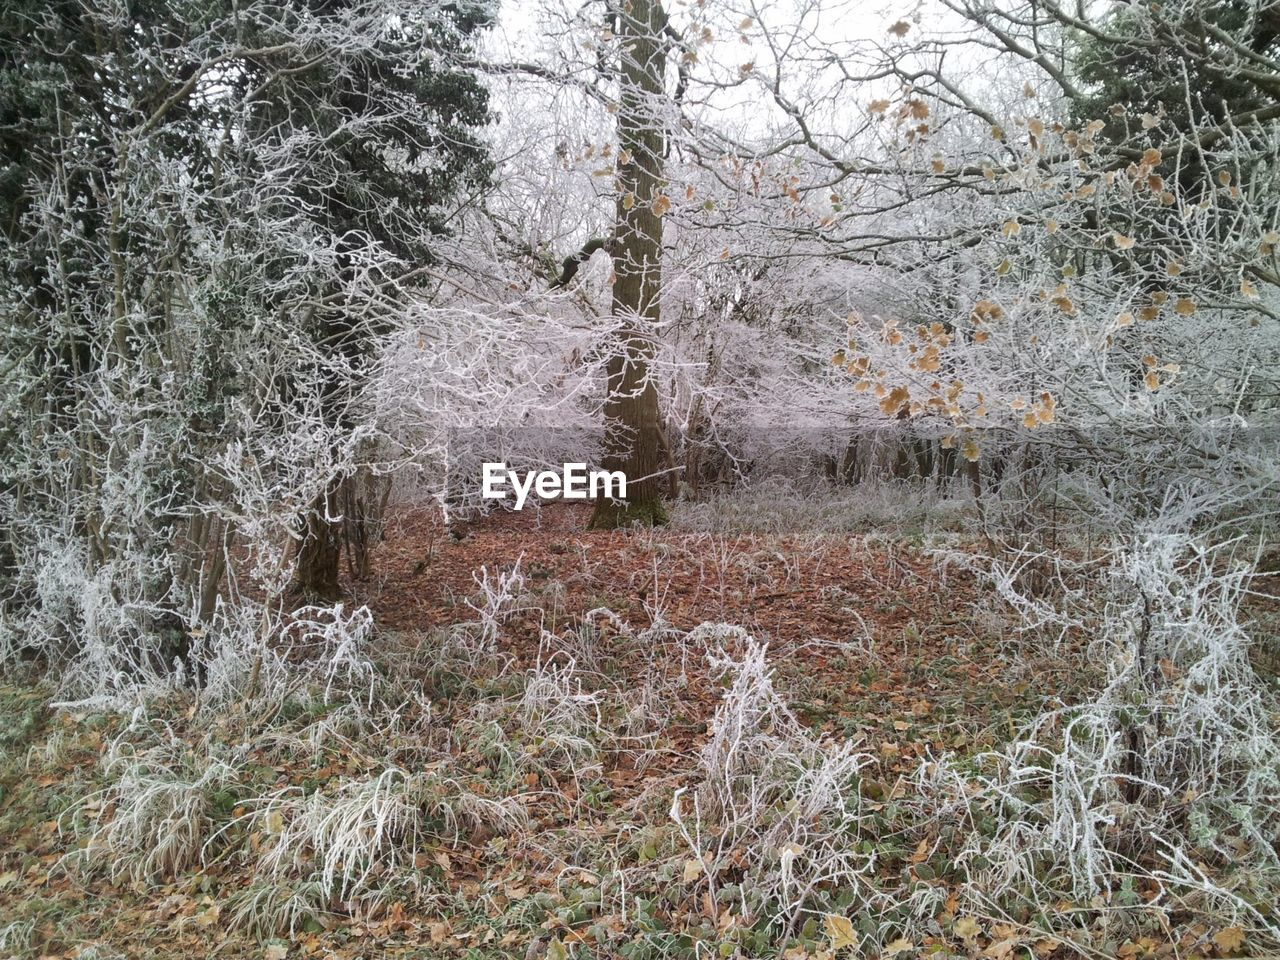 plant, tree, land, cold temperature, winter, forest, nature, snow, growth, no people, day, beauty in nature, tranquility, non-urban scene, outdoors, trunk, tree trunk, scenics - nature, field, woodland, snowing